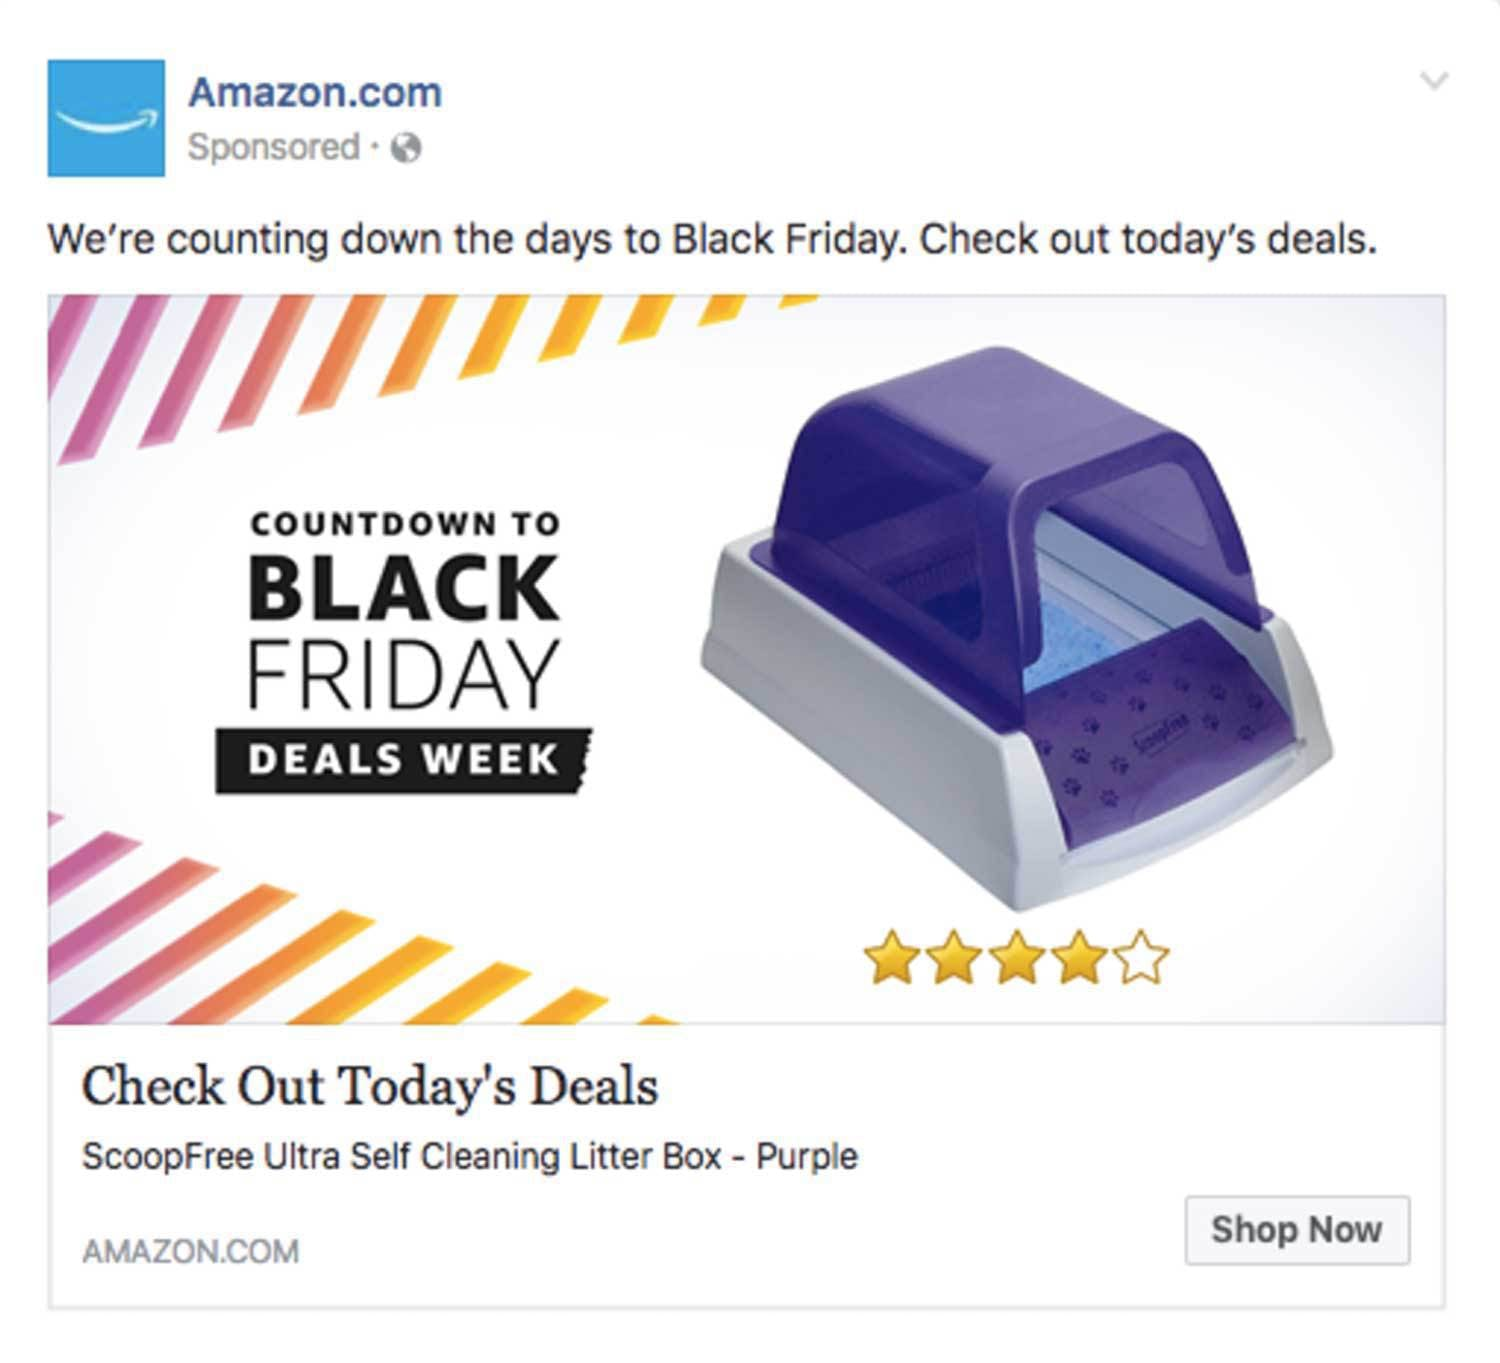 Facebook ads cost less than PPC and offer more targeting options